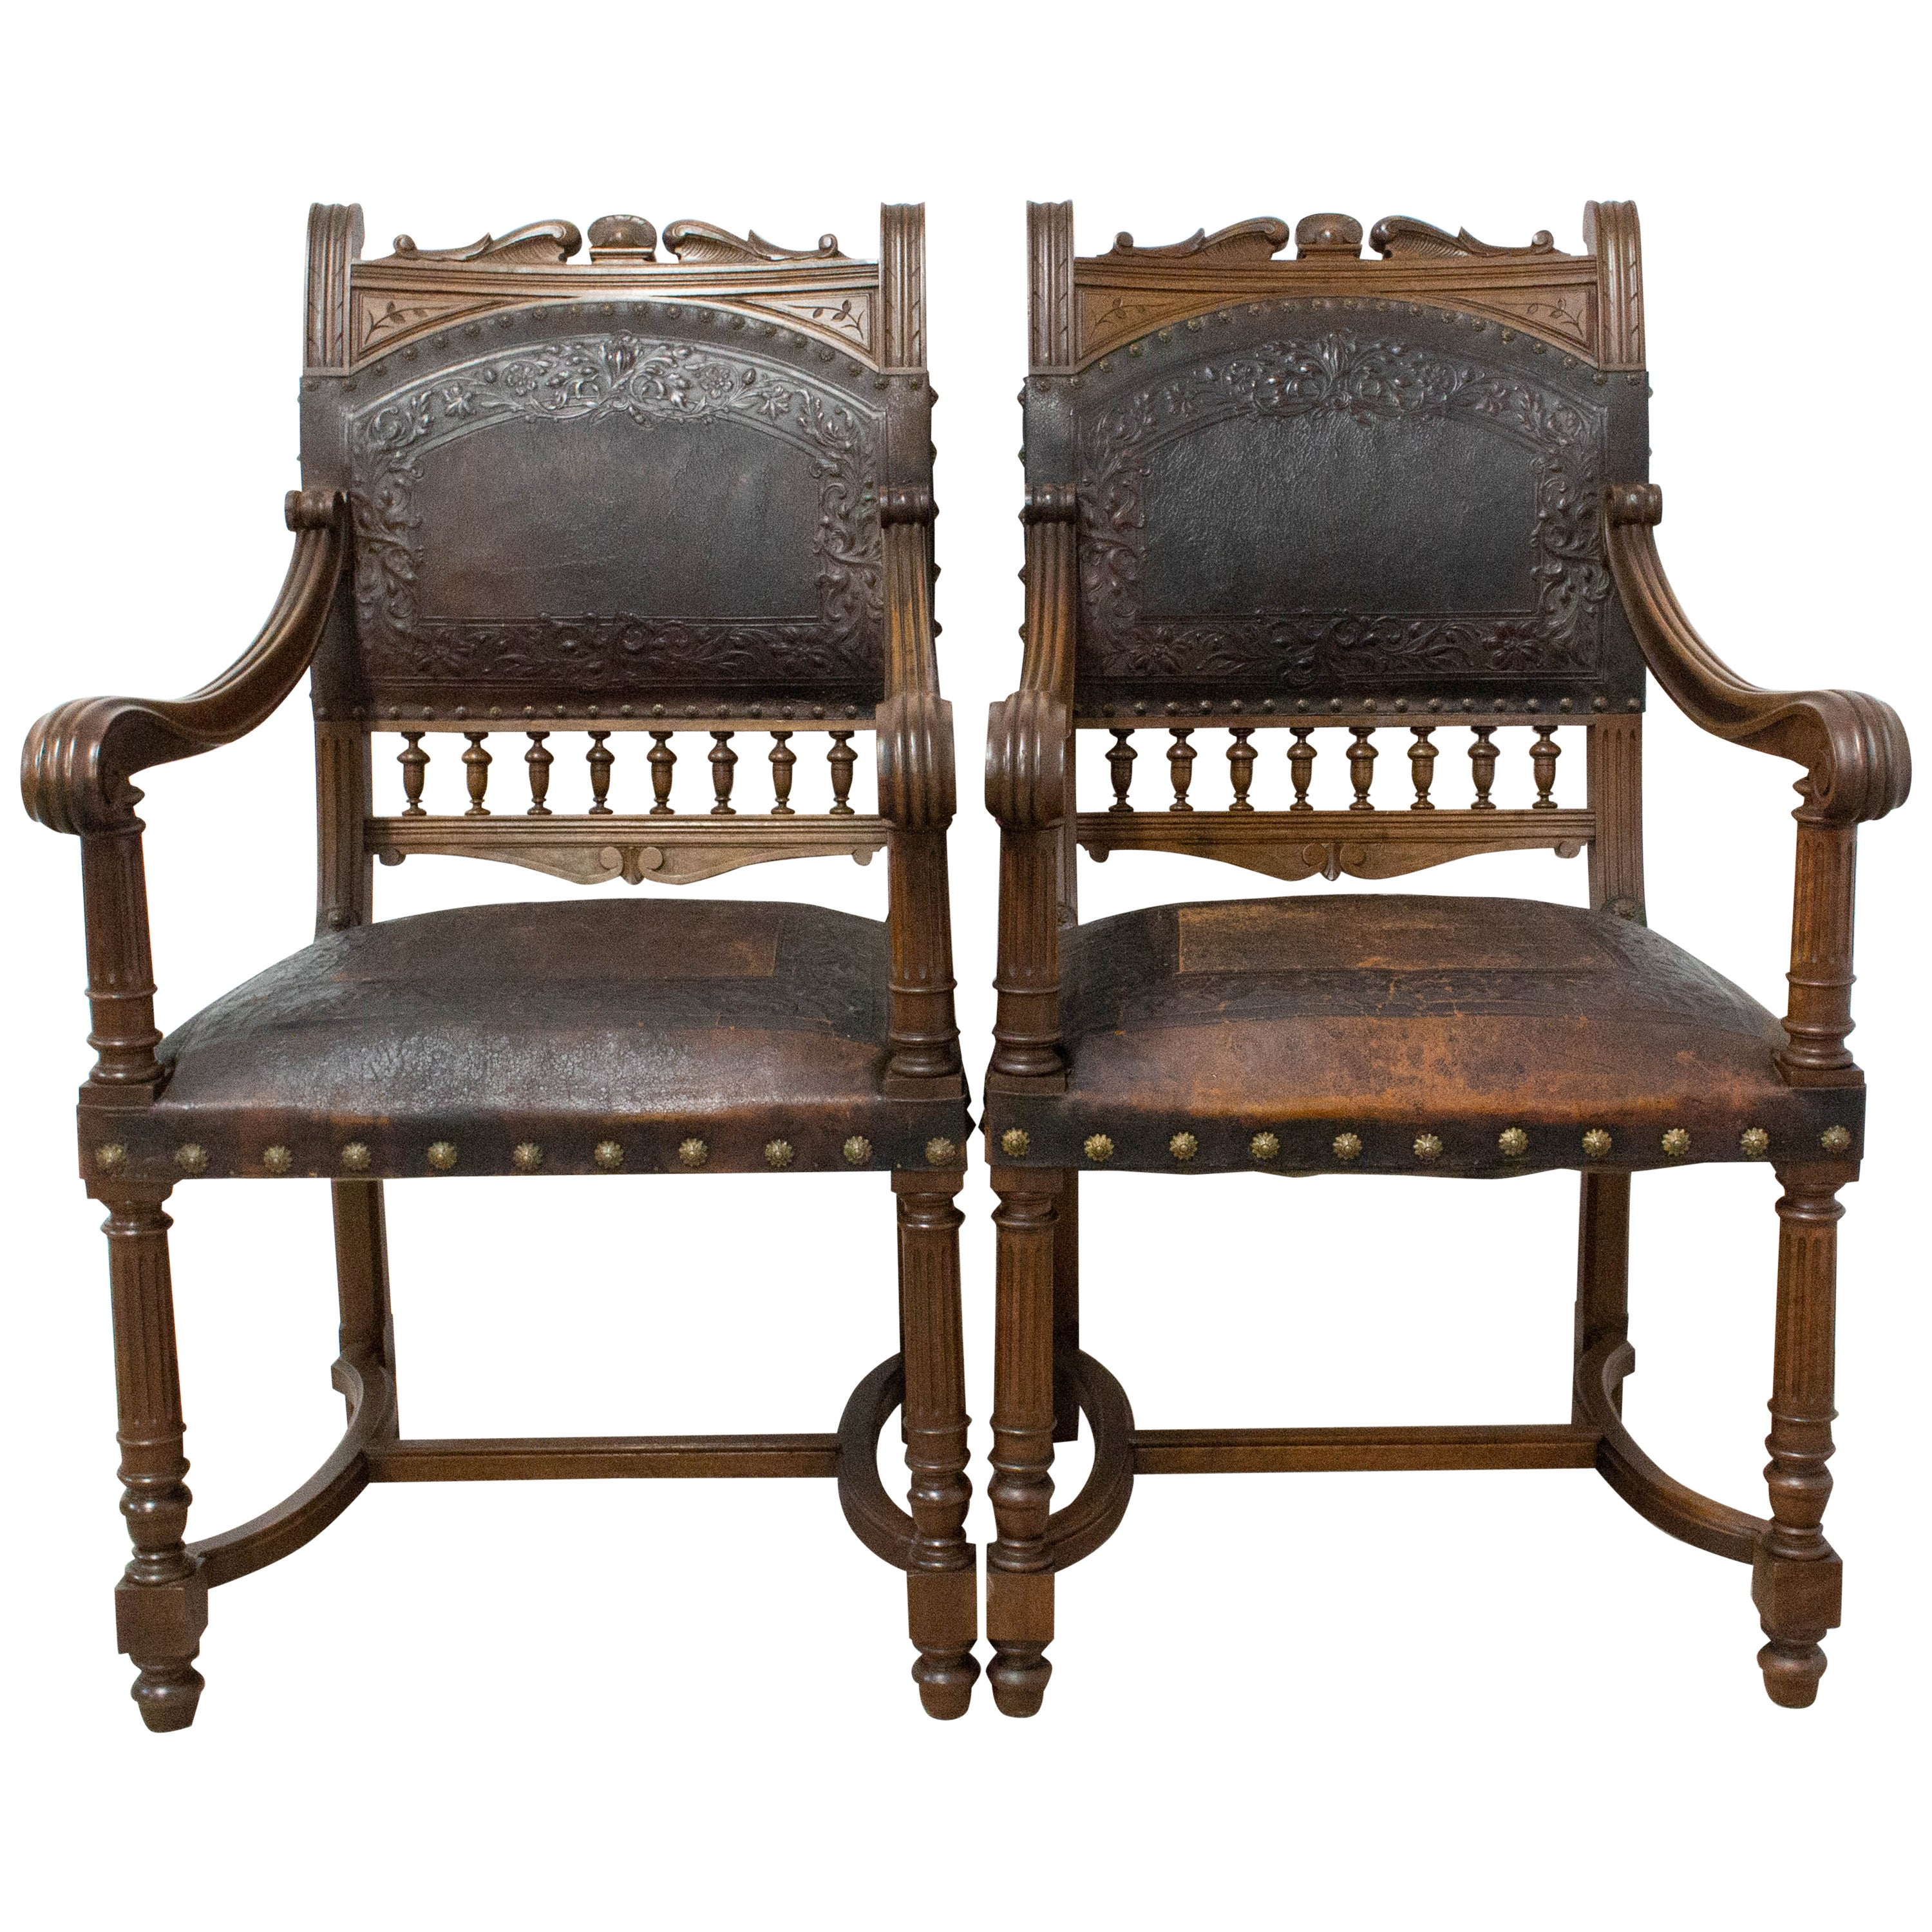 Pair of Louis XIII Style Armchairs, Late 19th Century